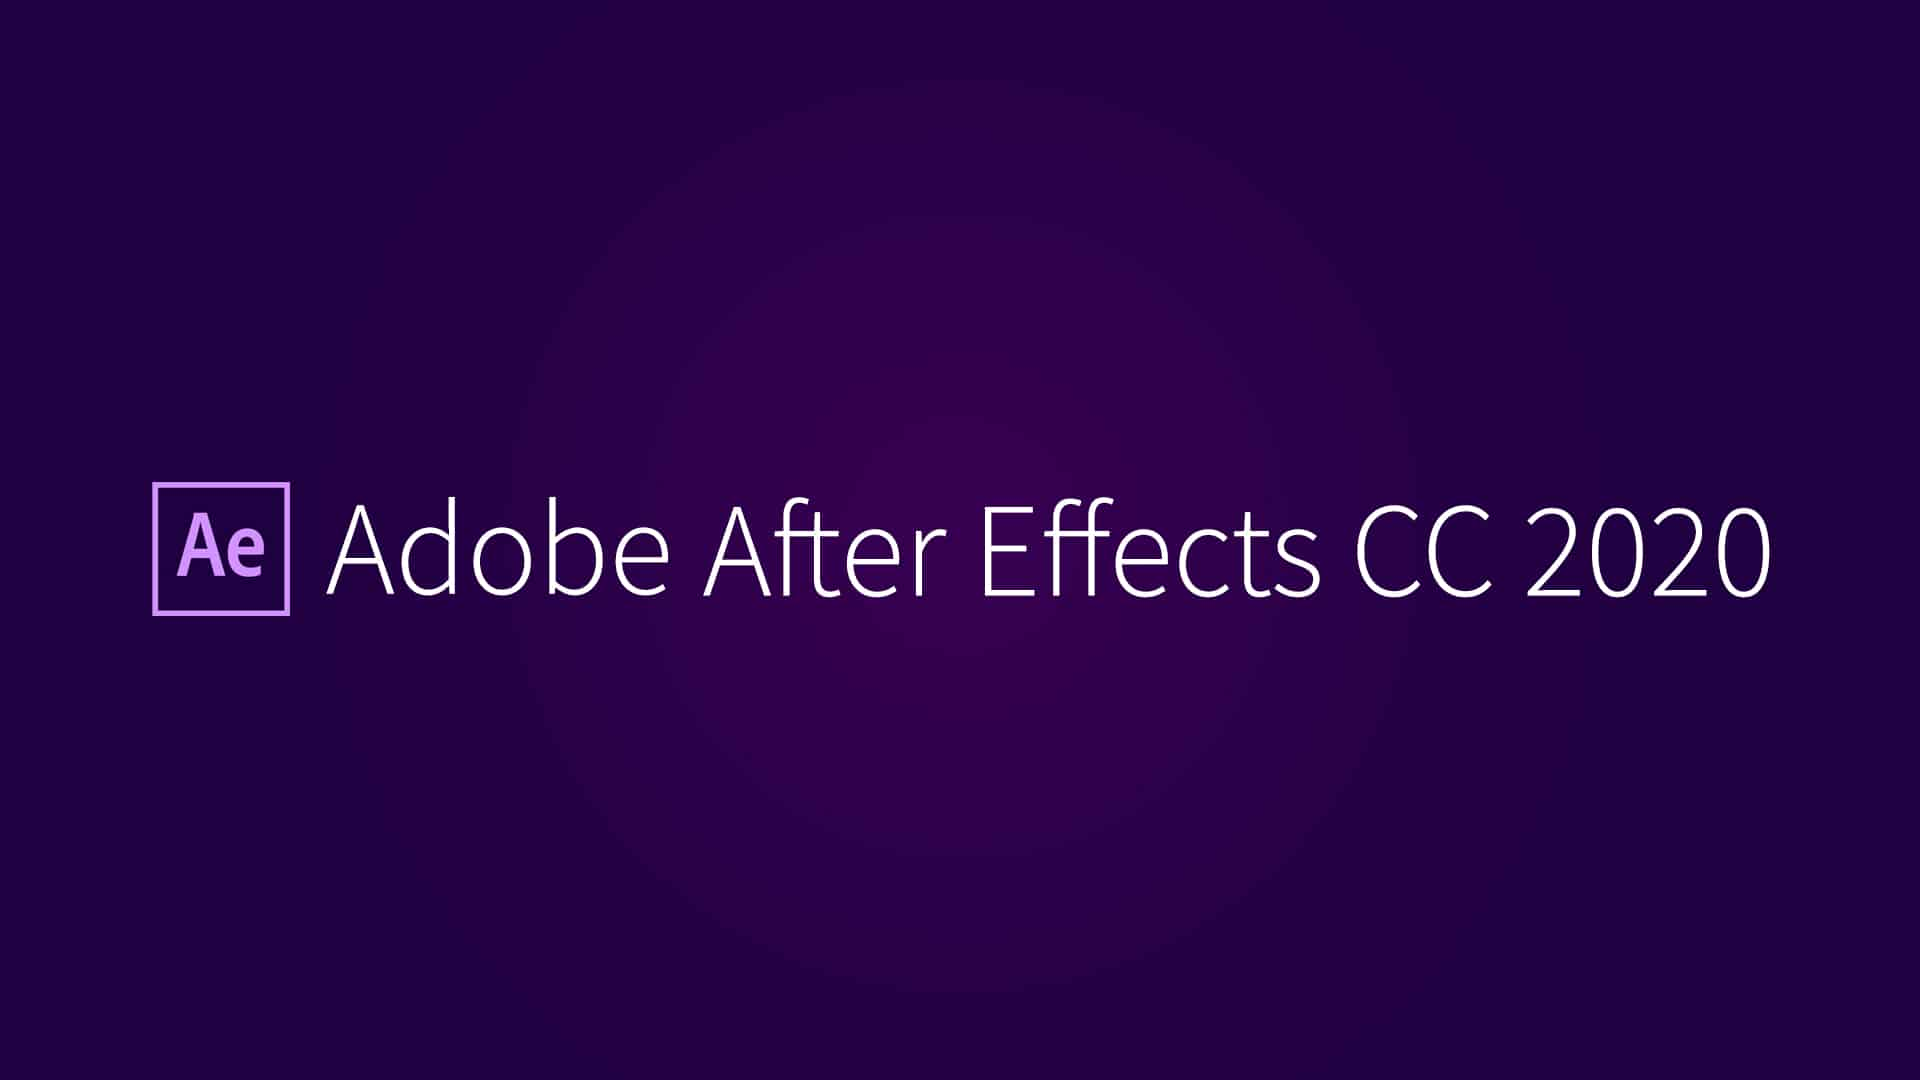 Adobe After Effects CC 2020